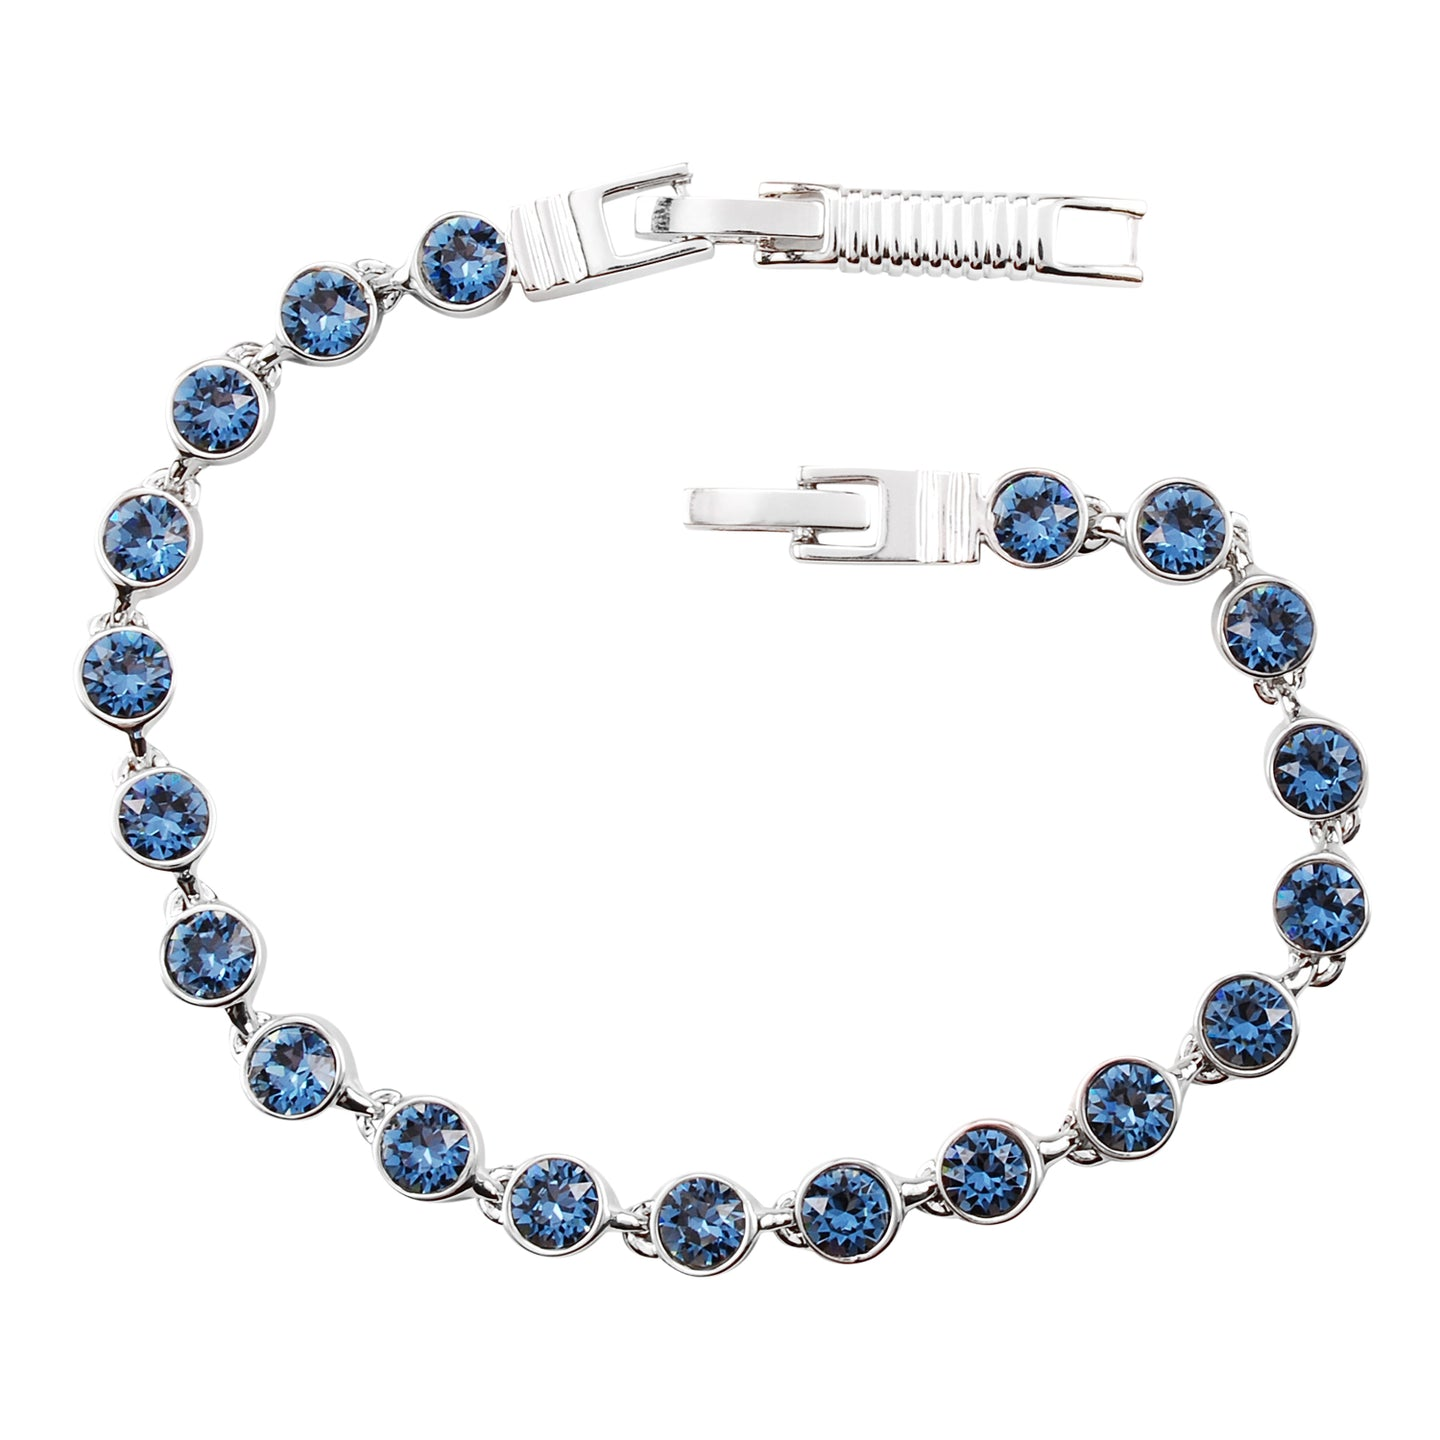 Denim Blue Crystal Tennis Bracelet (Small)